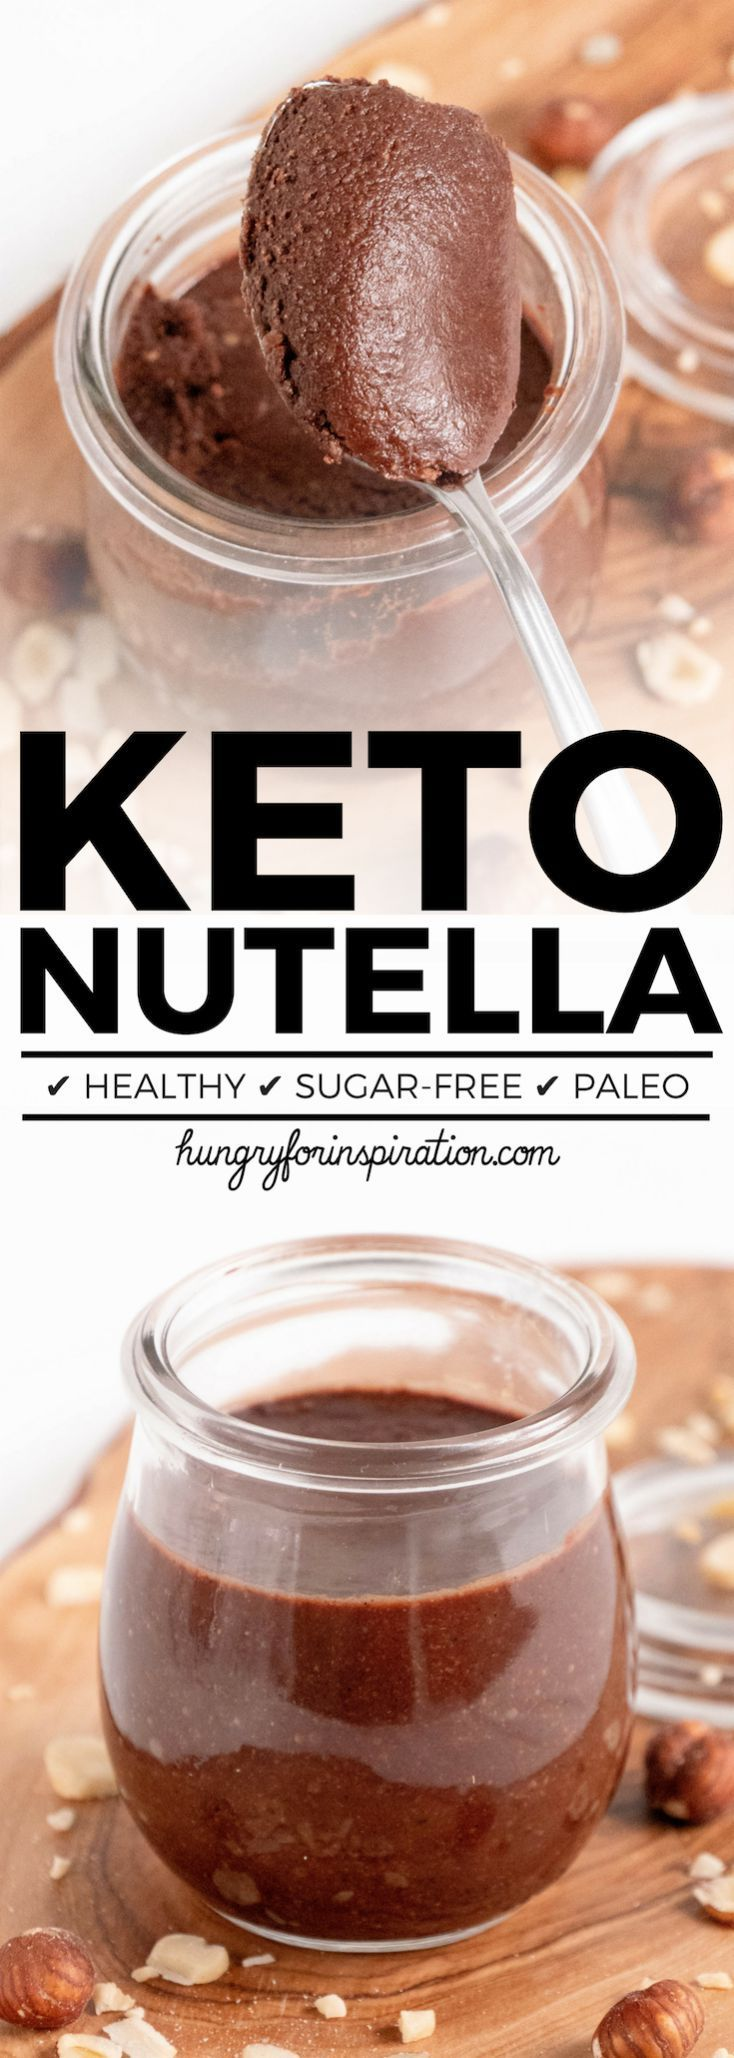 This Healthy & Easy Low Carb Hazelnut Spread (Keto Nutella) is the perfect addition to the ketogenic diet! It's easy to make & tastes amazing with Low Carb Pancakes! Easy Keto Dessert (Low Carb Desserts) that's Paleo & Vegan! #keto #ketodiet #ketorecipes #ketogenic #ketogenicdiet #ketodessert #lowcarb #lowcarbrecipes #lowcarbdiet #lowcarbdessert #ketodessert